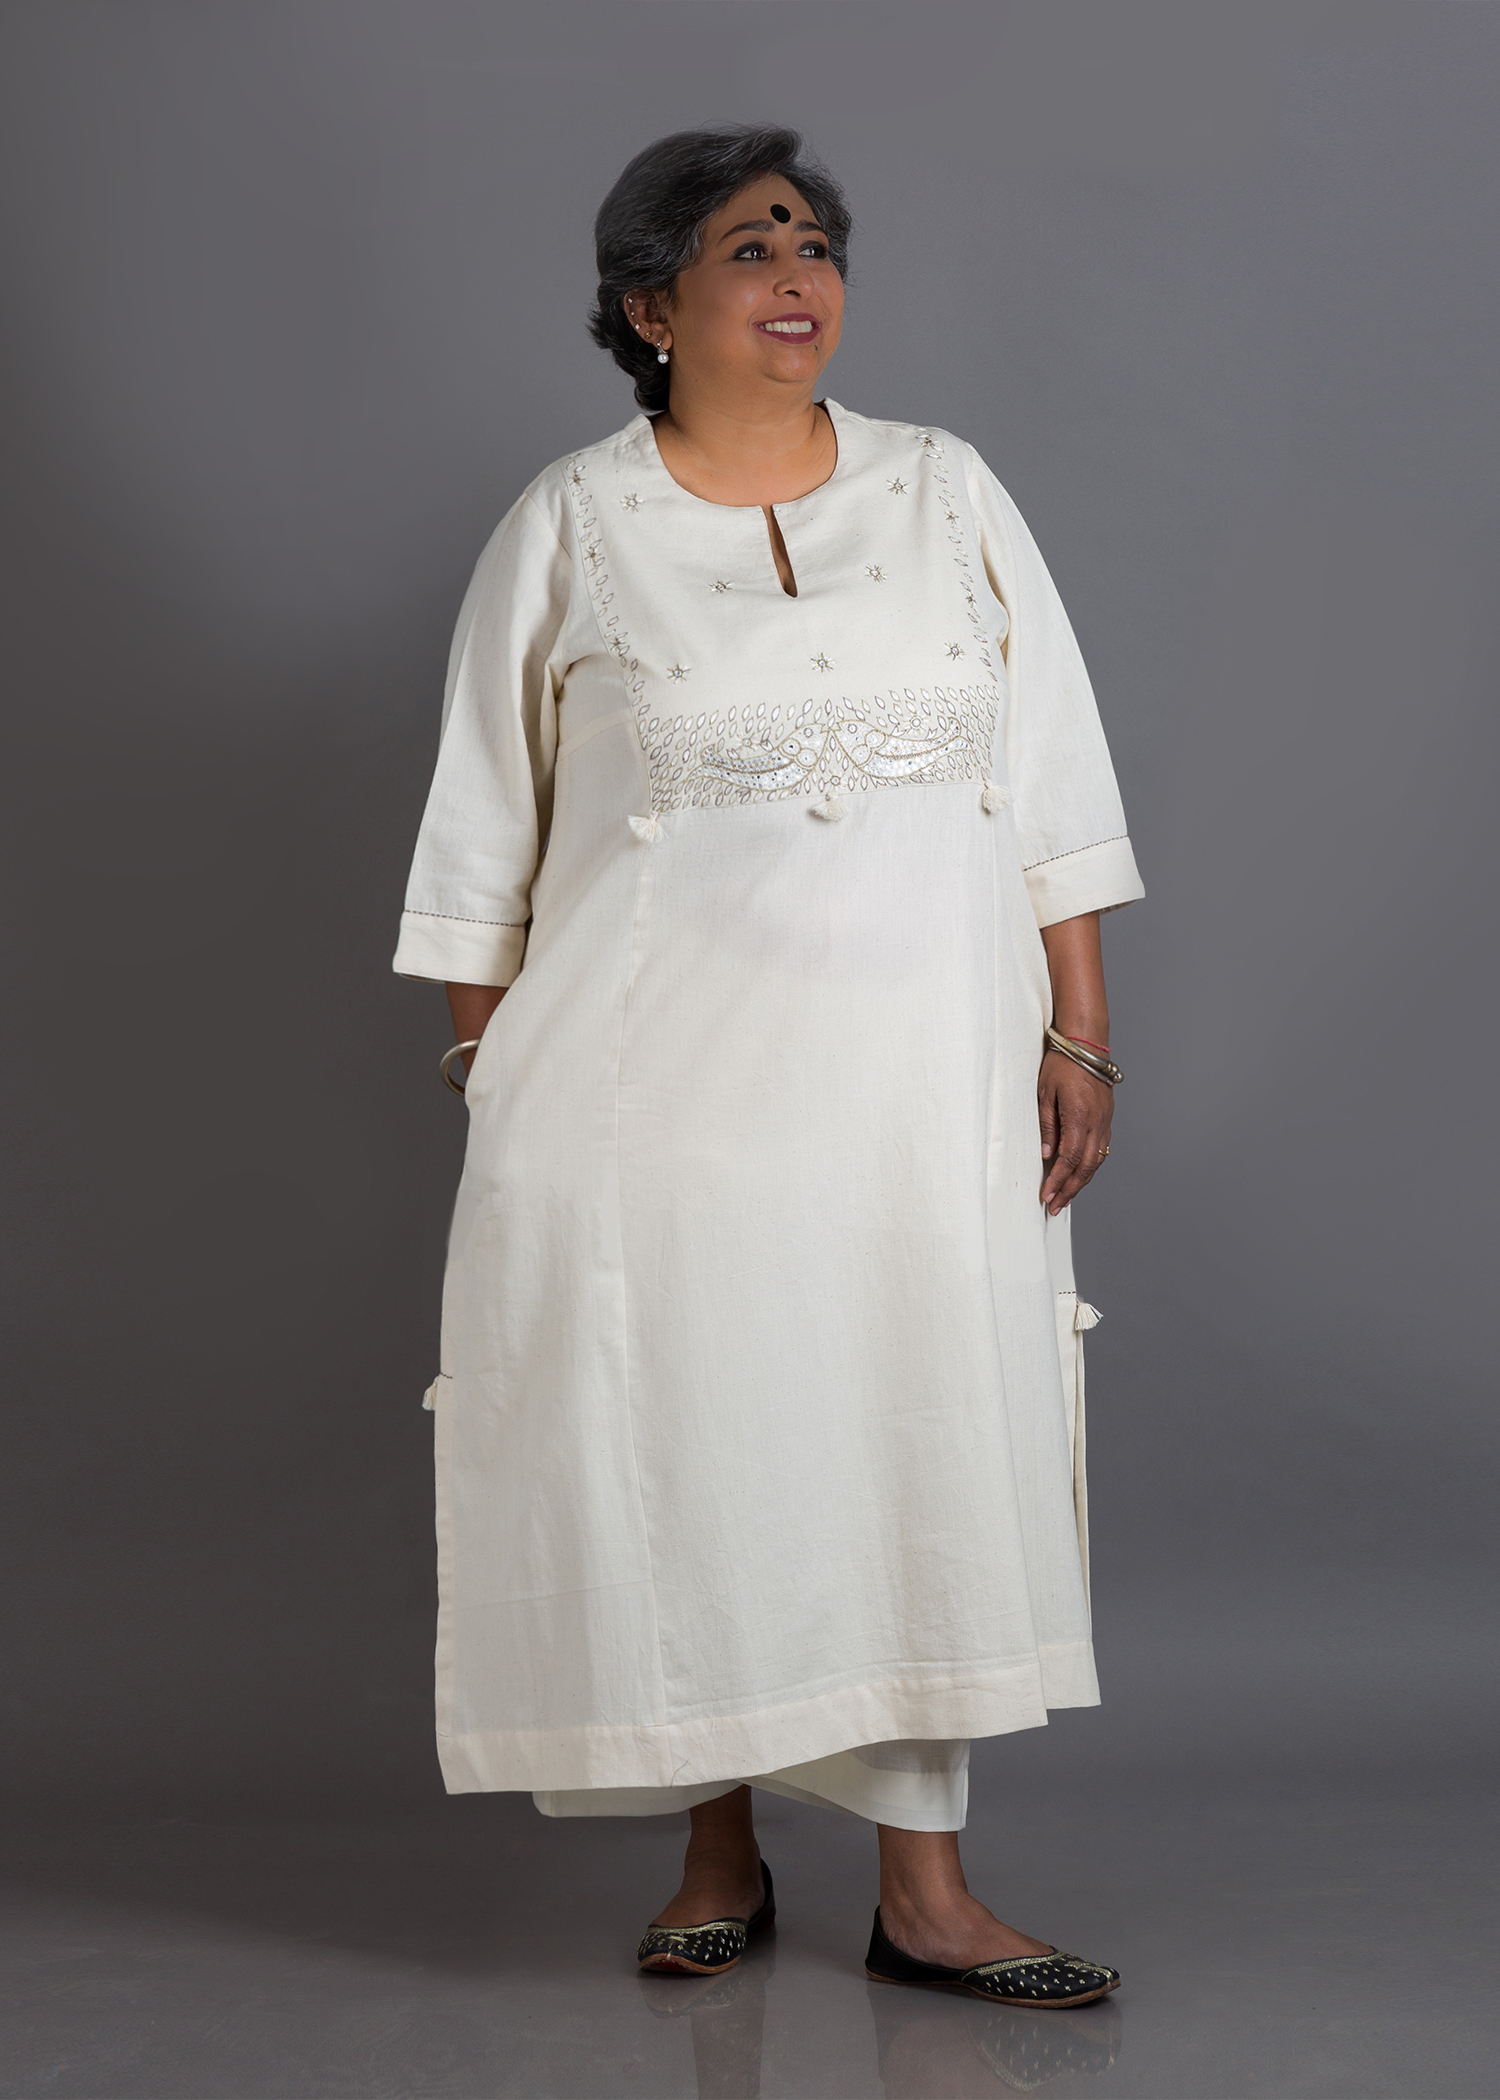 Off-White Handwoven Cotton Kurta with Fish Motif Handwork